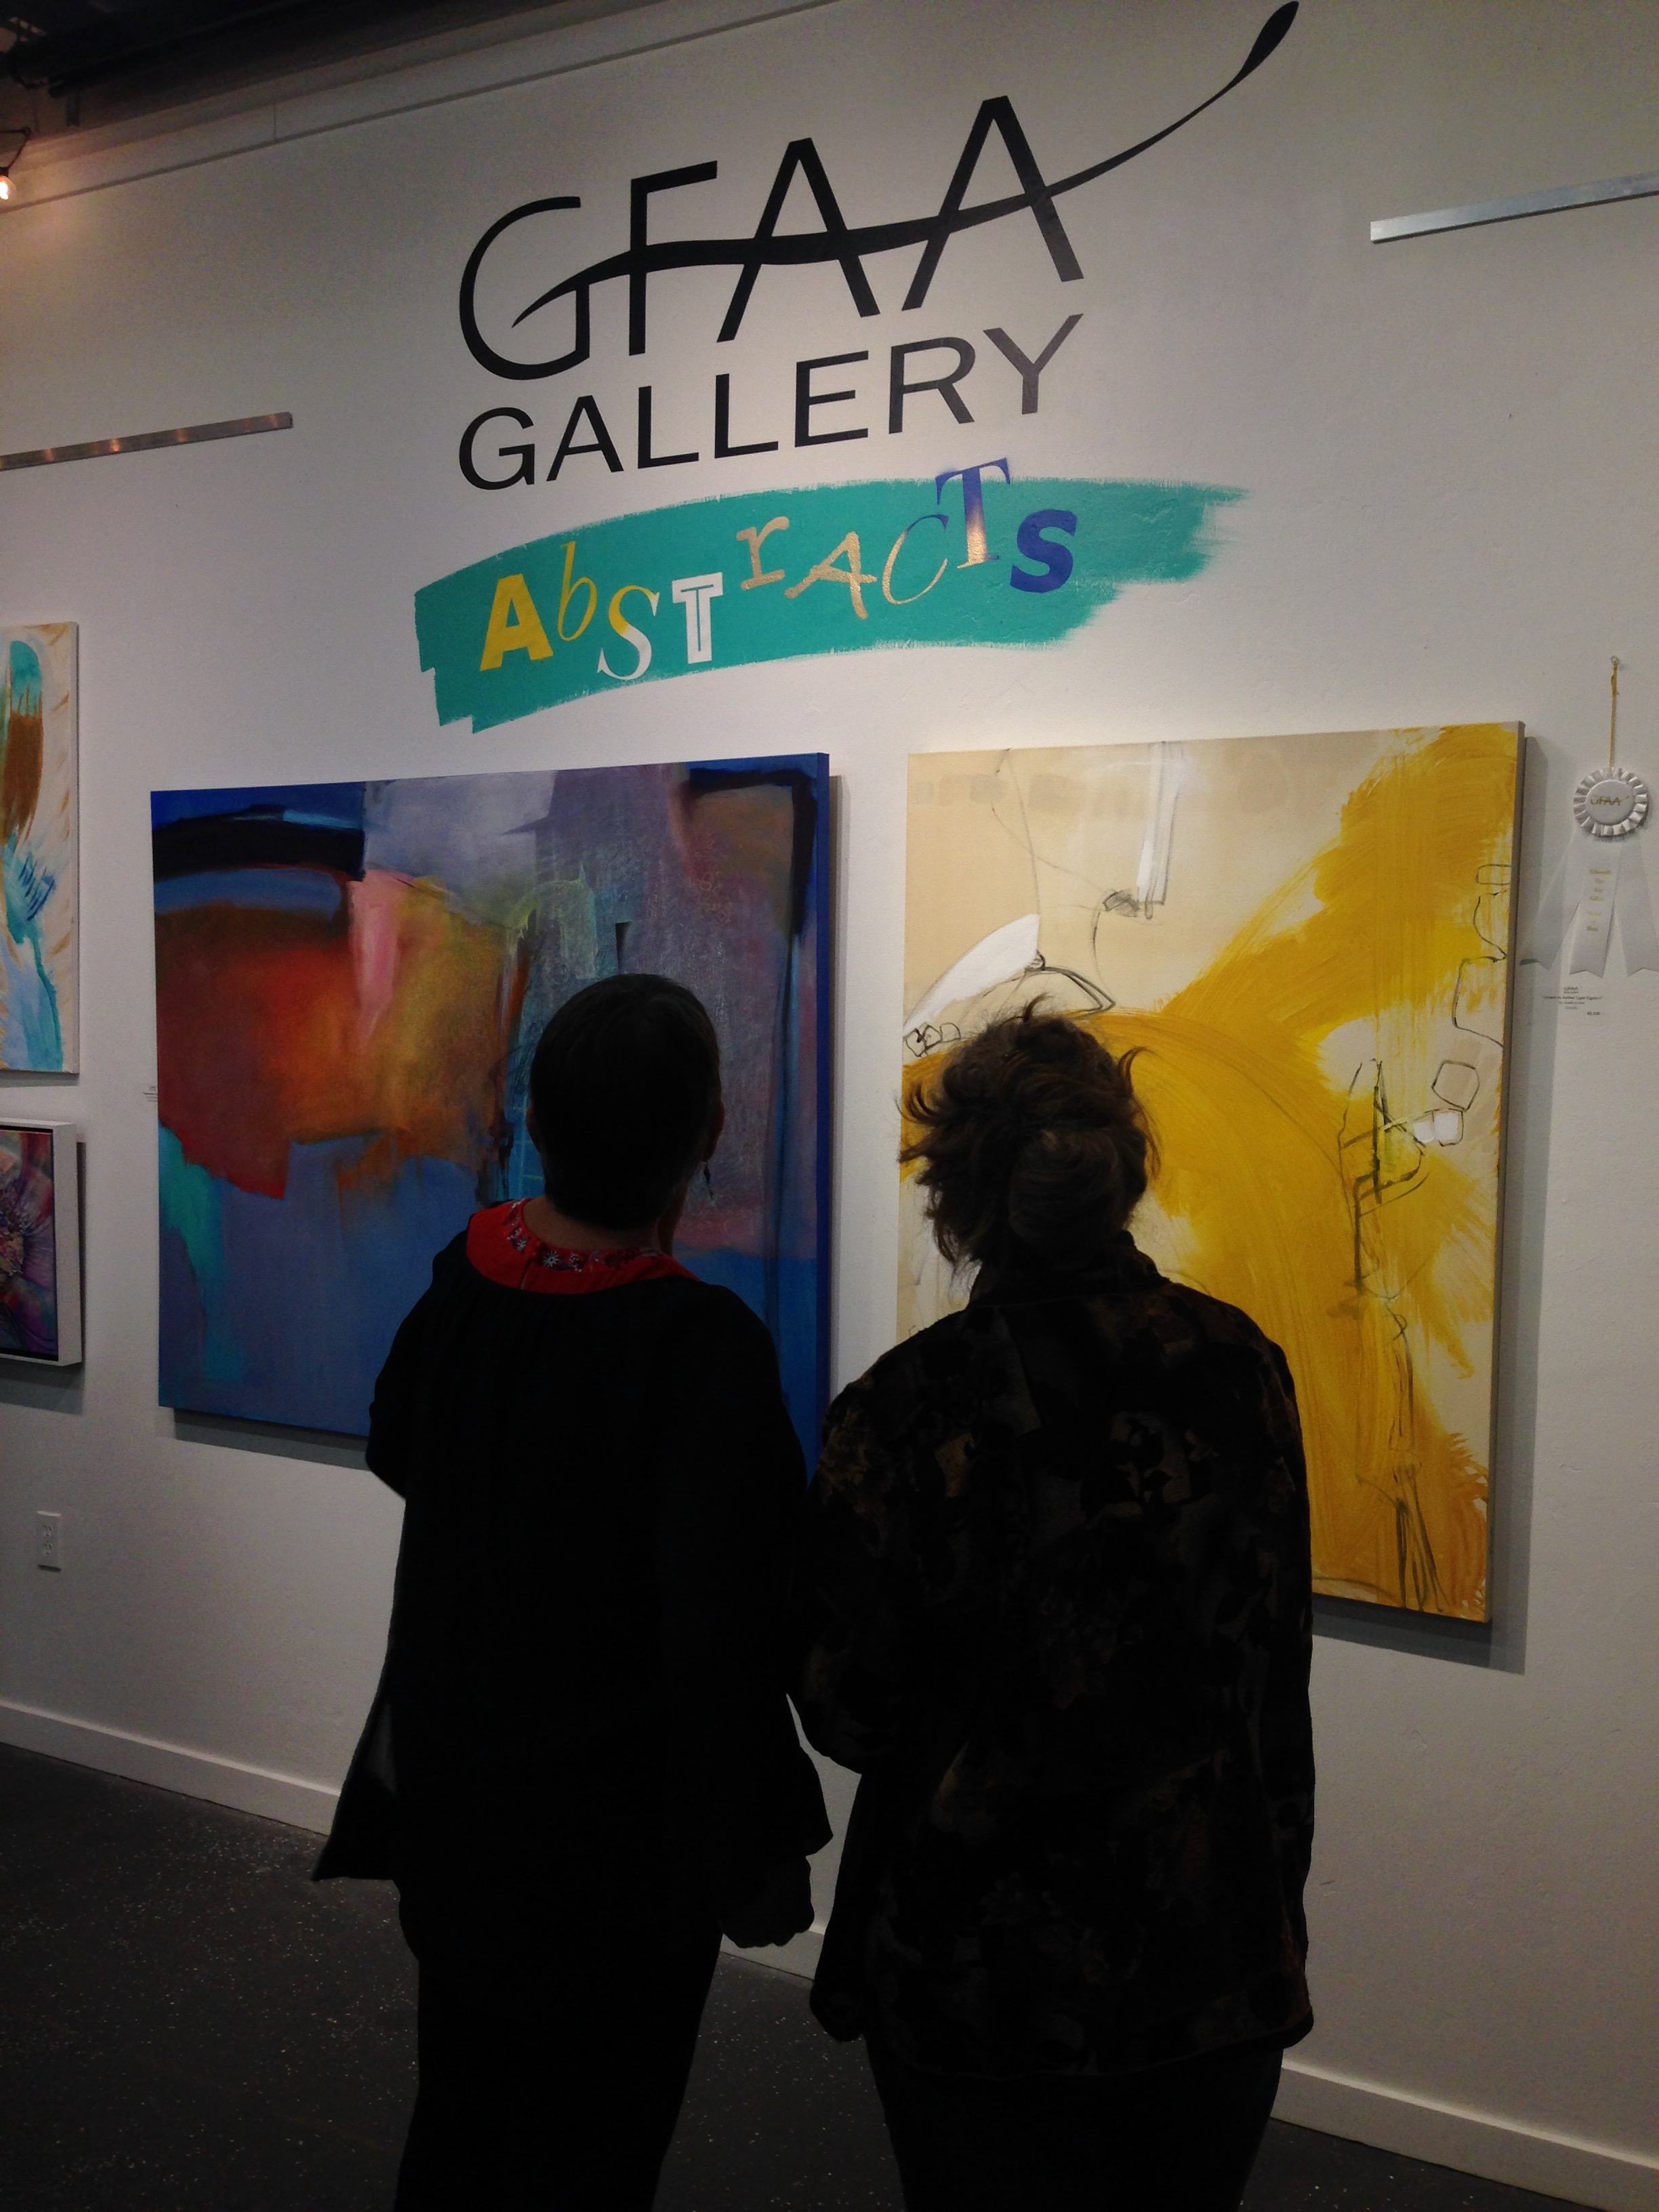 GFAA Gallery Abstracts